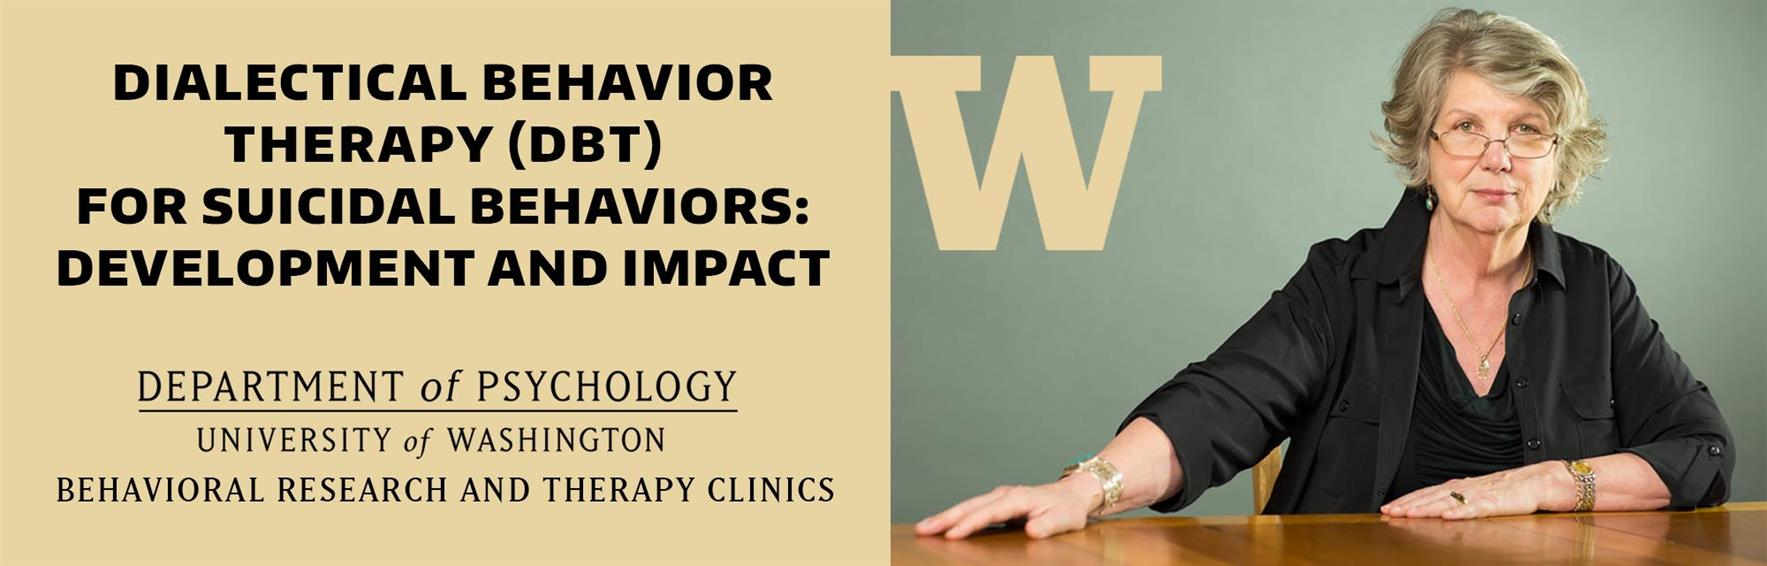 Dialectical Behavior Therapy (DBT): Development and Impact